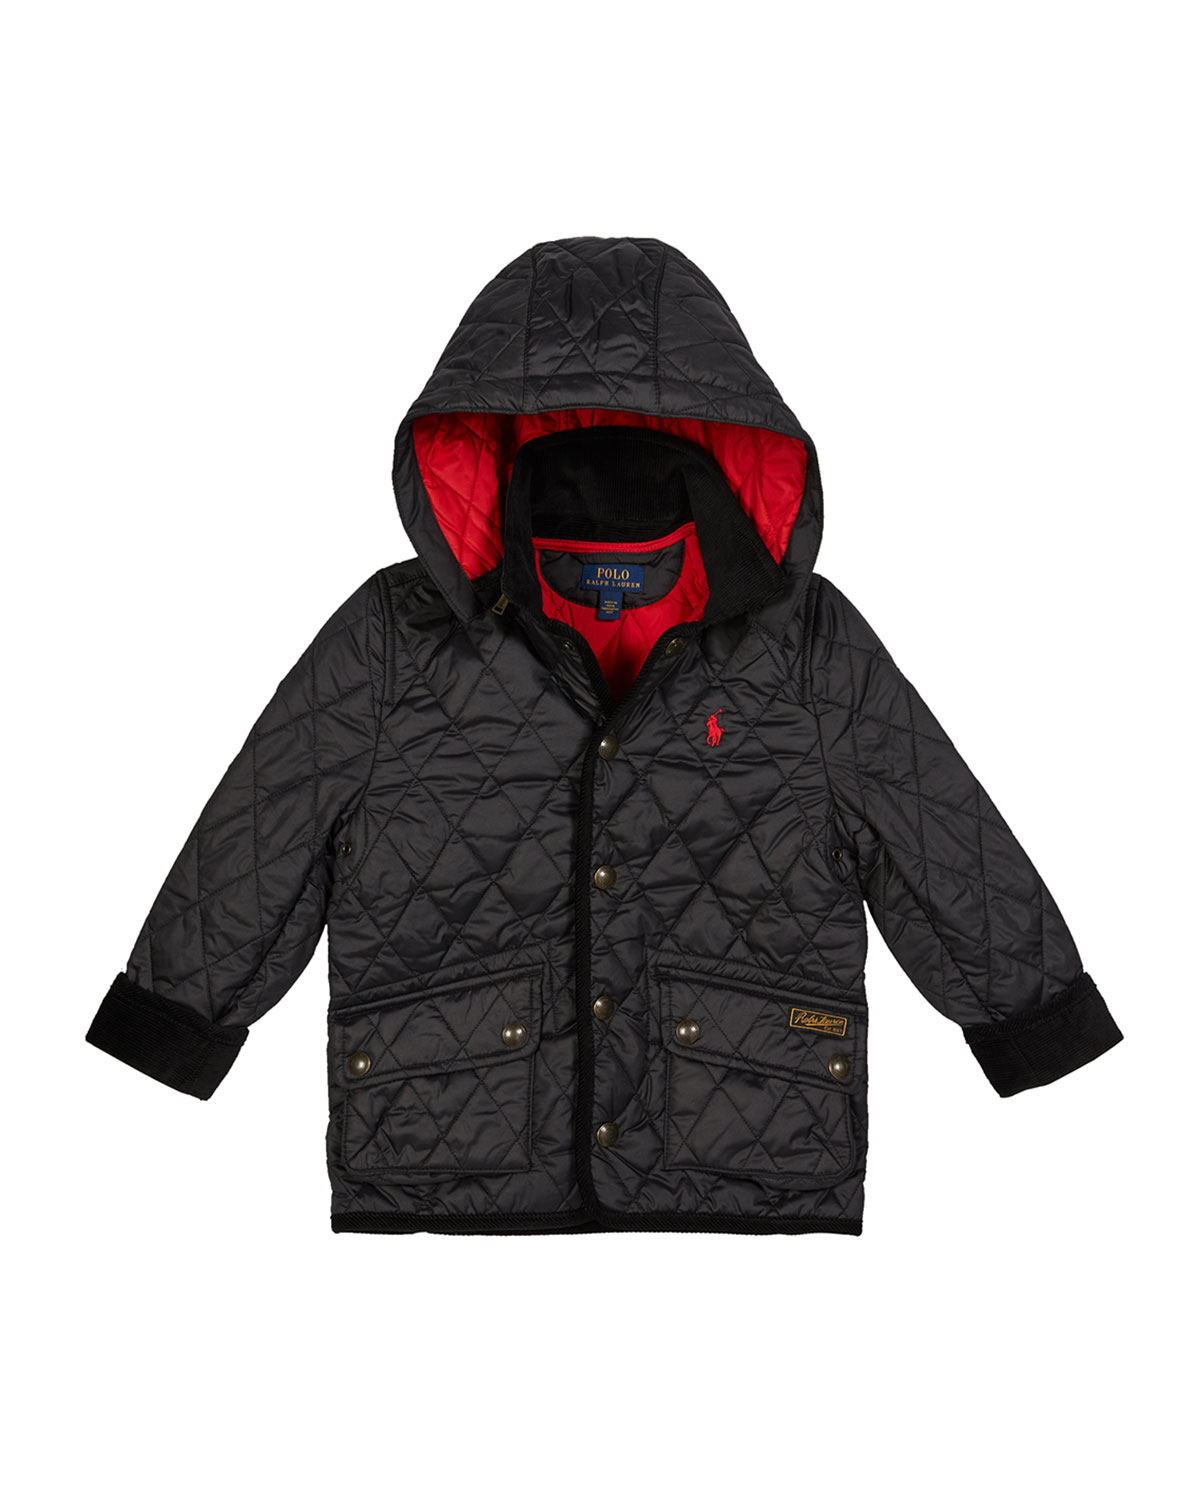 Ralph Lauren Childrenswear Boy's Penny Kempton Quilted Puffer Car Jacket, Size 5-7